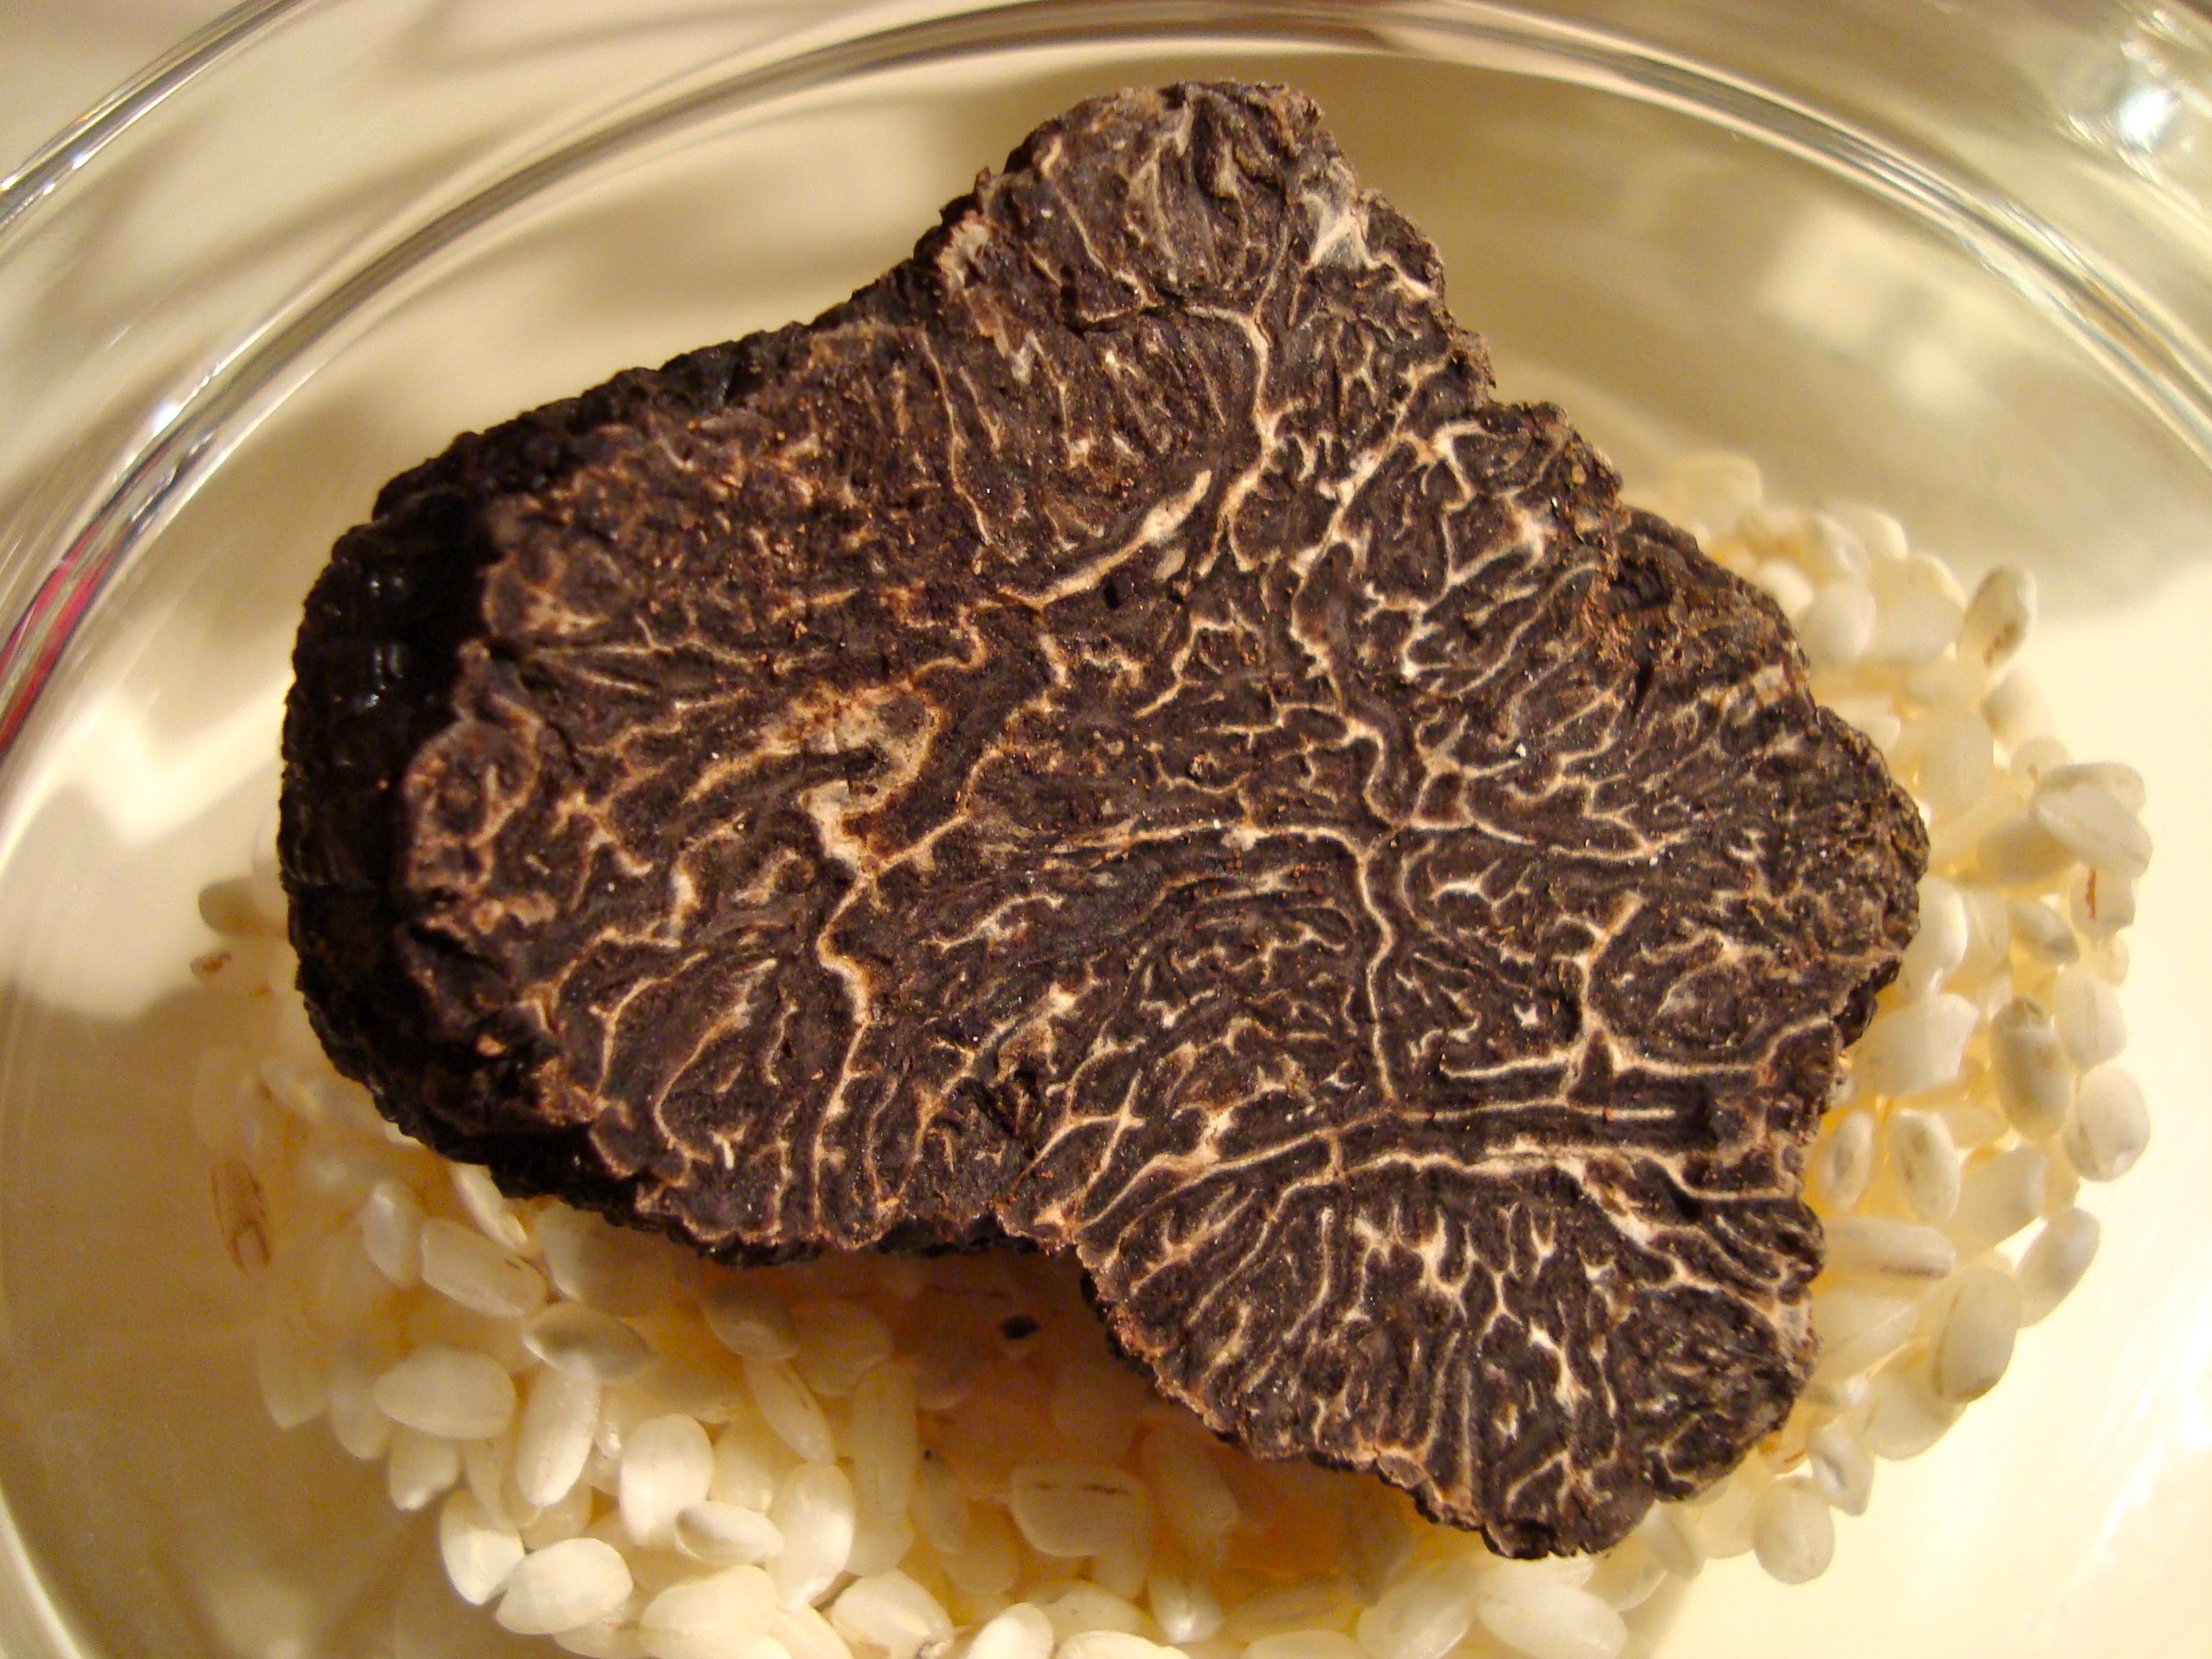 black truffle from Western Australia